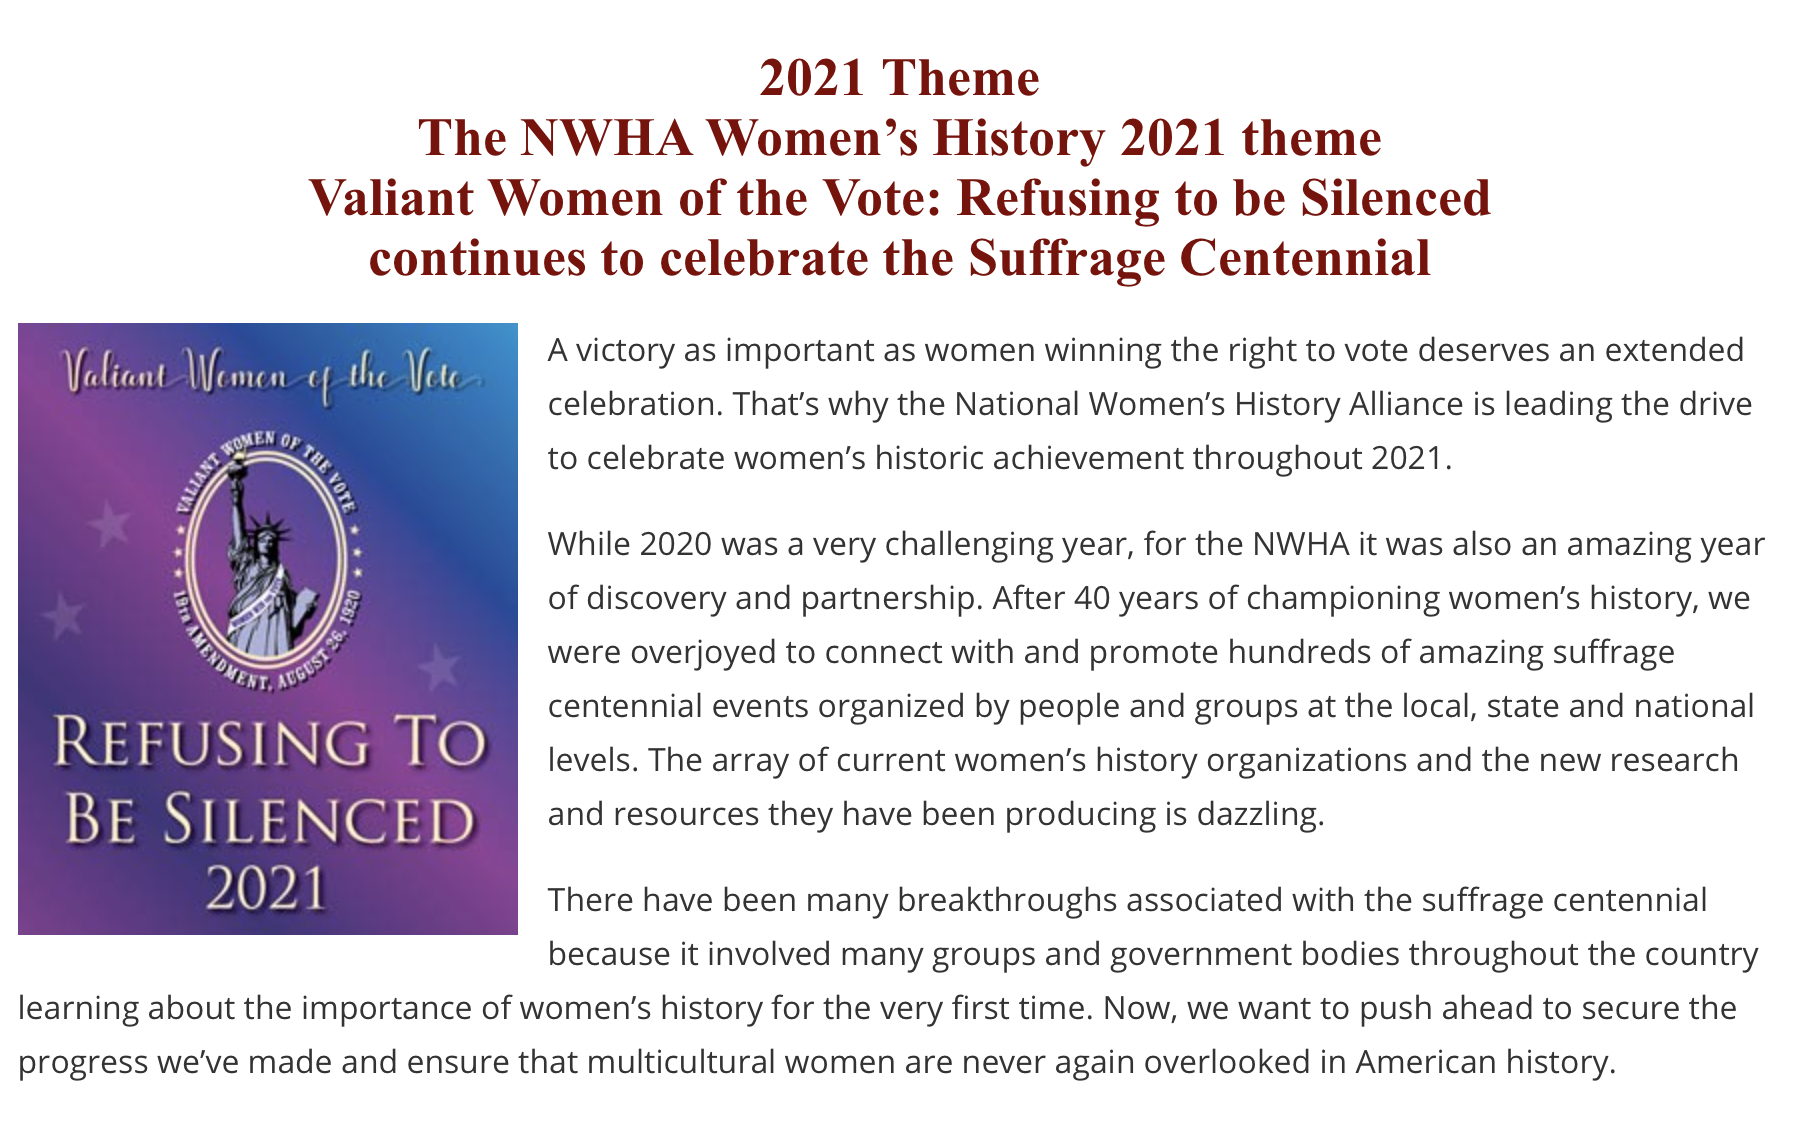 2021 Theme The NWHA Women's History 2021 theme Valiant Women of the Vote: Refusing to be Silenced continues to celebrate the Suffrage Centennial. A victory as important as women winning the right to vote deserves an extended celebration. That's why the National Women's History Alliance is leading the drive to celebrate women's historic achievement throughout 2021. While 2020 was a very challenging year, for the NWHA it was also an amazing year of discovery and partnership. After 40 years of championing women's history, we were overjoyed to connect with and promote hundreds of amazing suffrage centennial events organized by people and groups at the local, state and national levels. The array of current women's history organizations and the new research and resources they have been producing is dazzling. There have been many breakthroughs associated with the suffrage centennial because it involved many groups and government bodies throughout the country learning about the importance of women's history for the very first time. Now, we want to push ahead to secure the progress we've made and ensure that multicultural women are never again overlooked in American history.